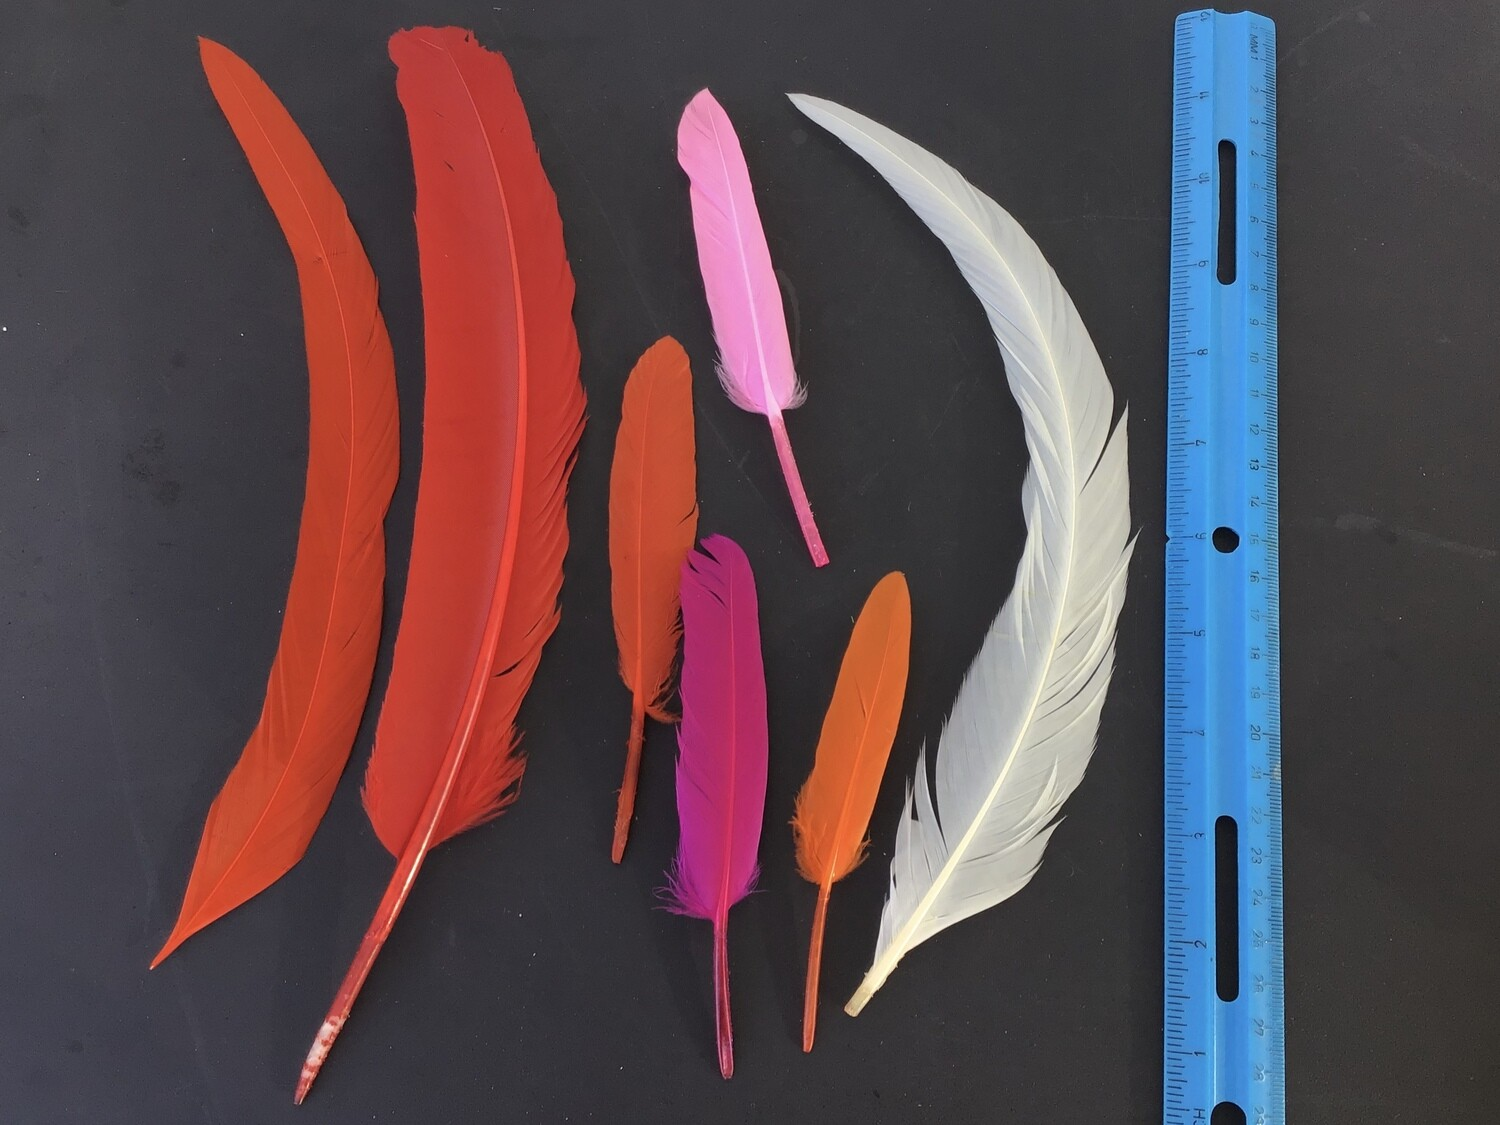 Feathers - Red, Pink, Orange, White